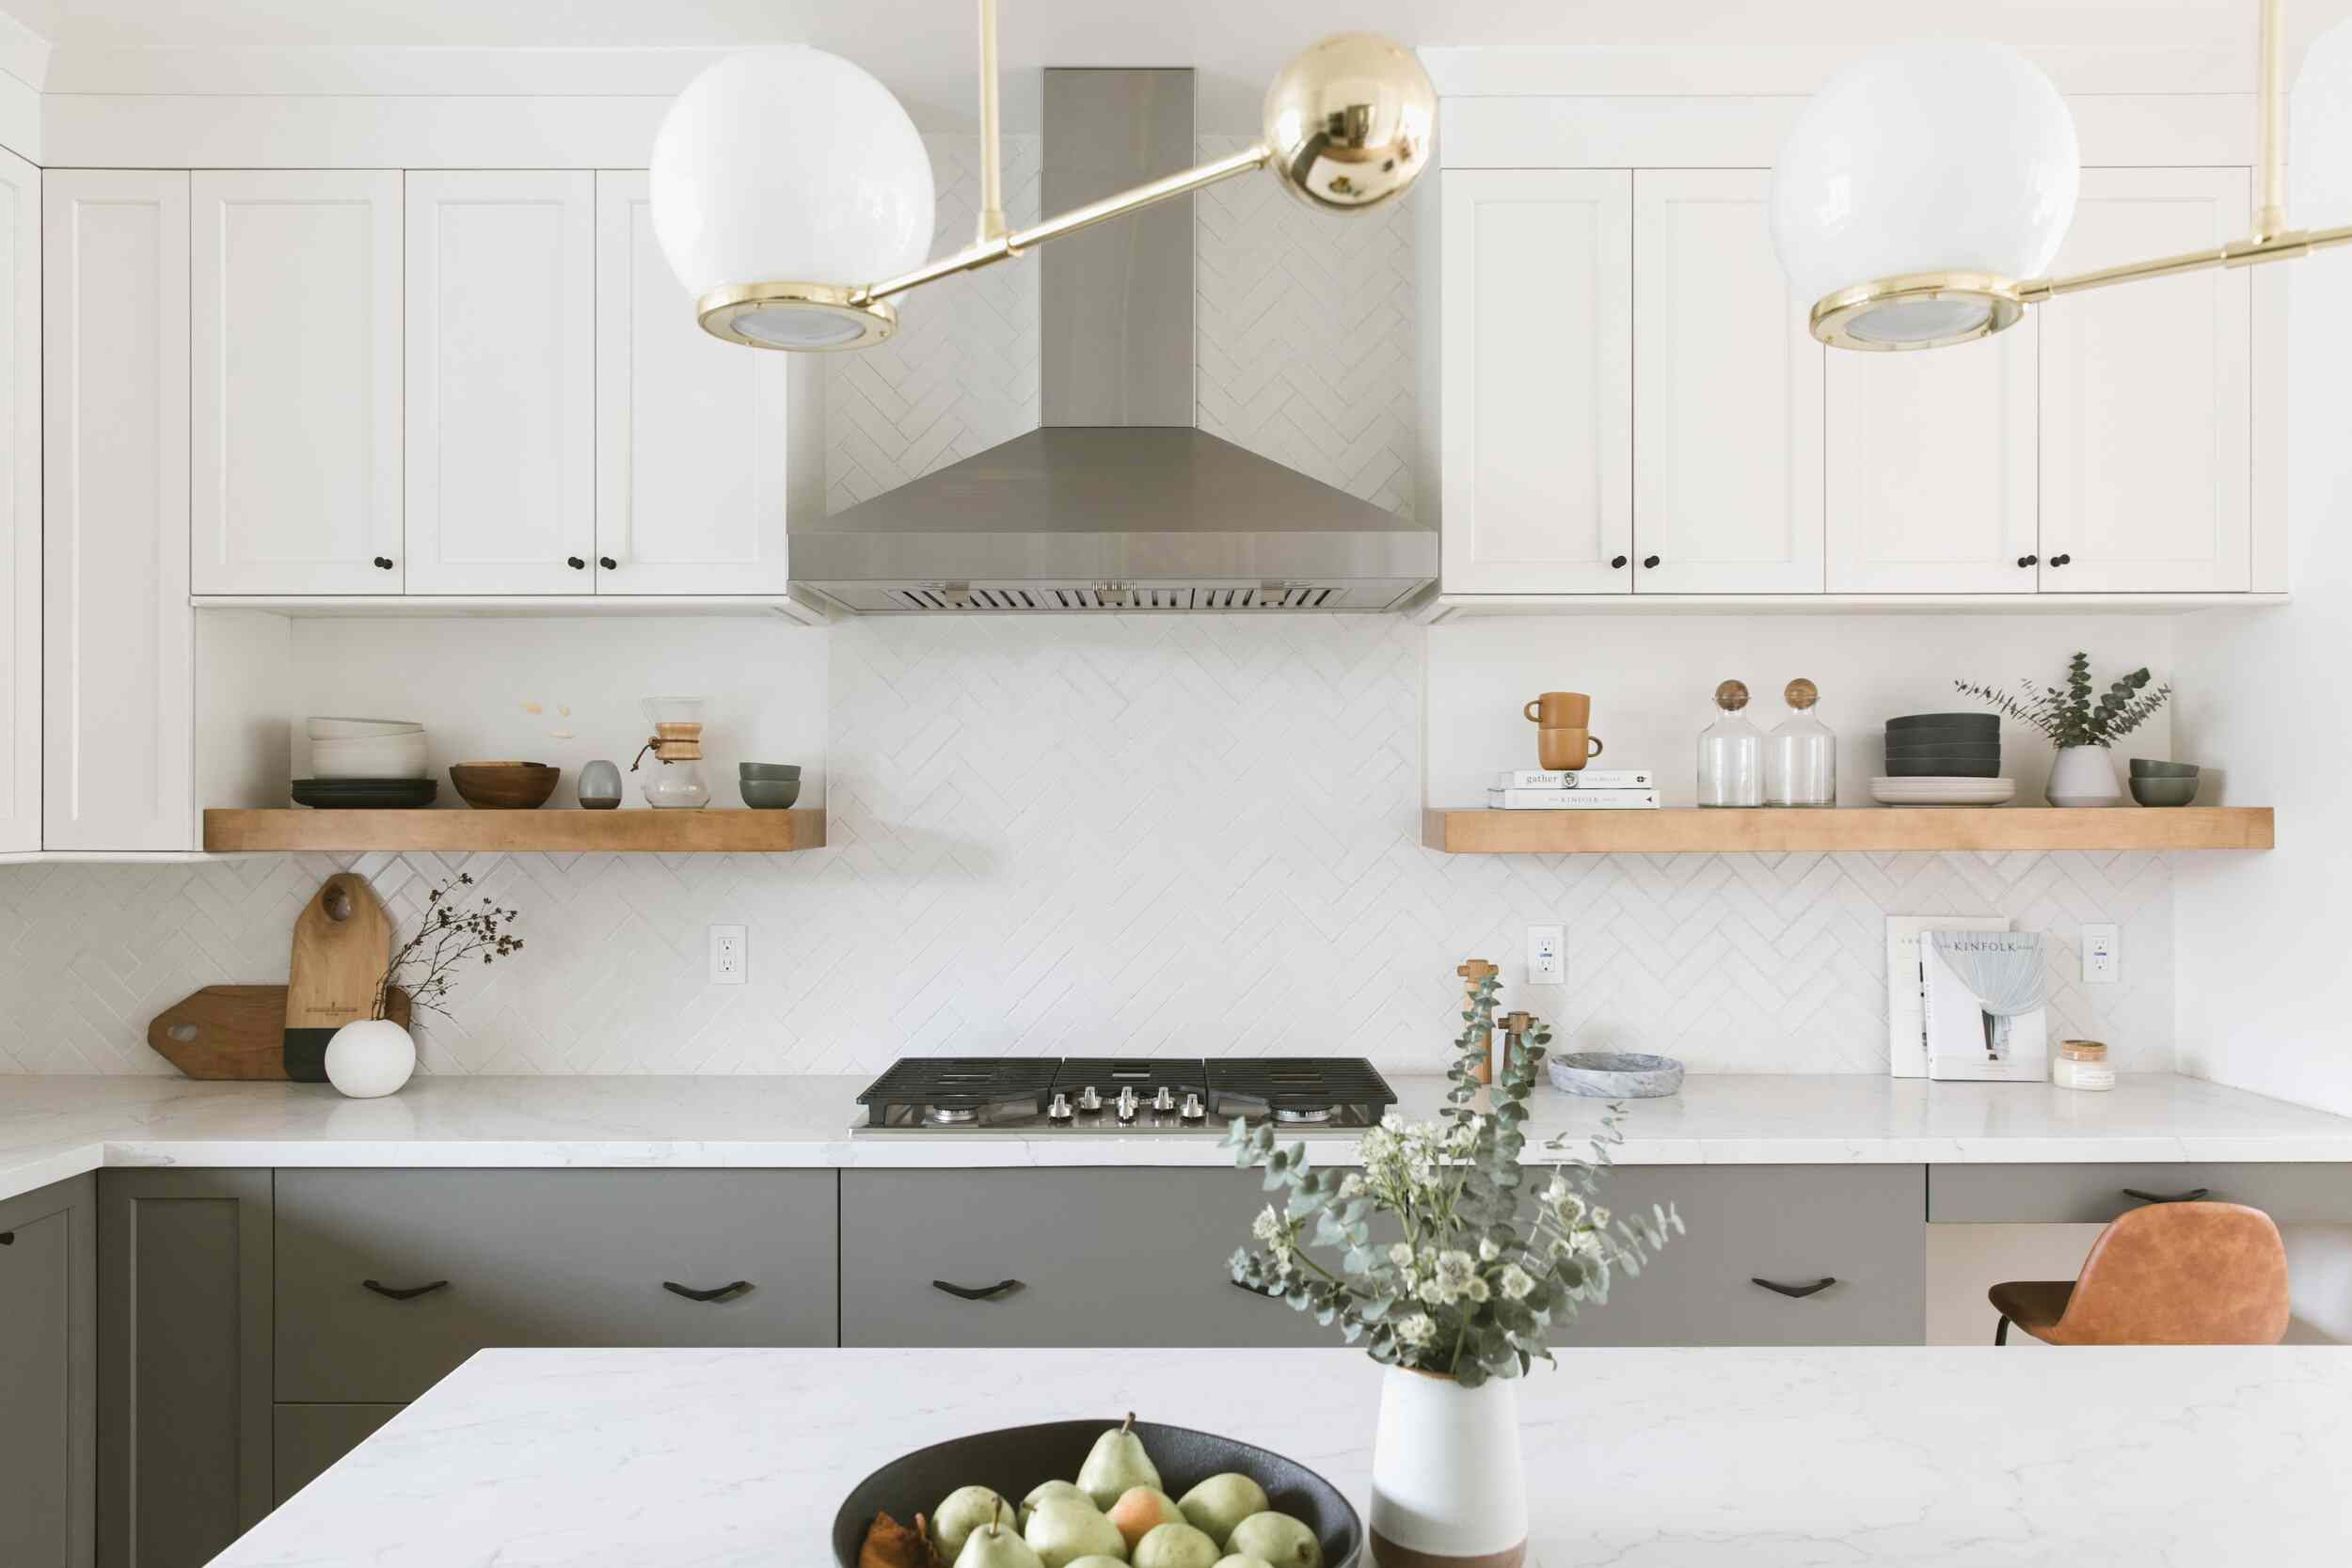 best kithcen ideas - gray and white kitchen with open shelving and pendant lighting